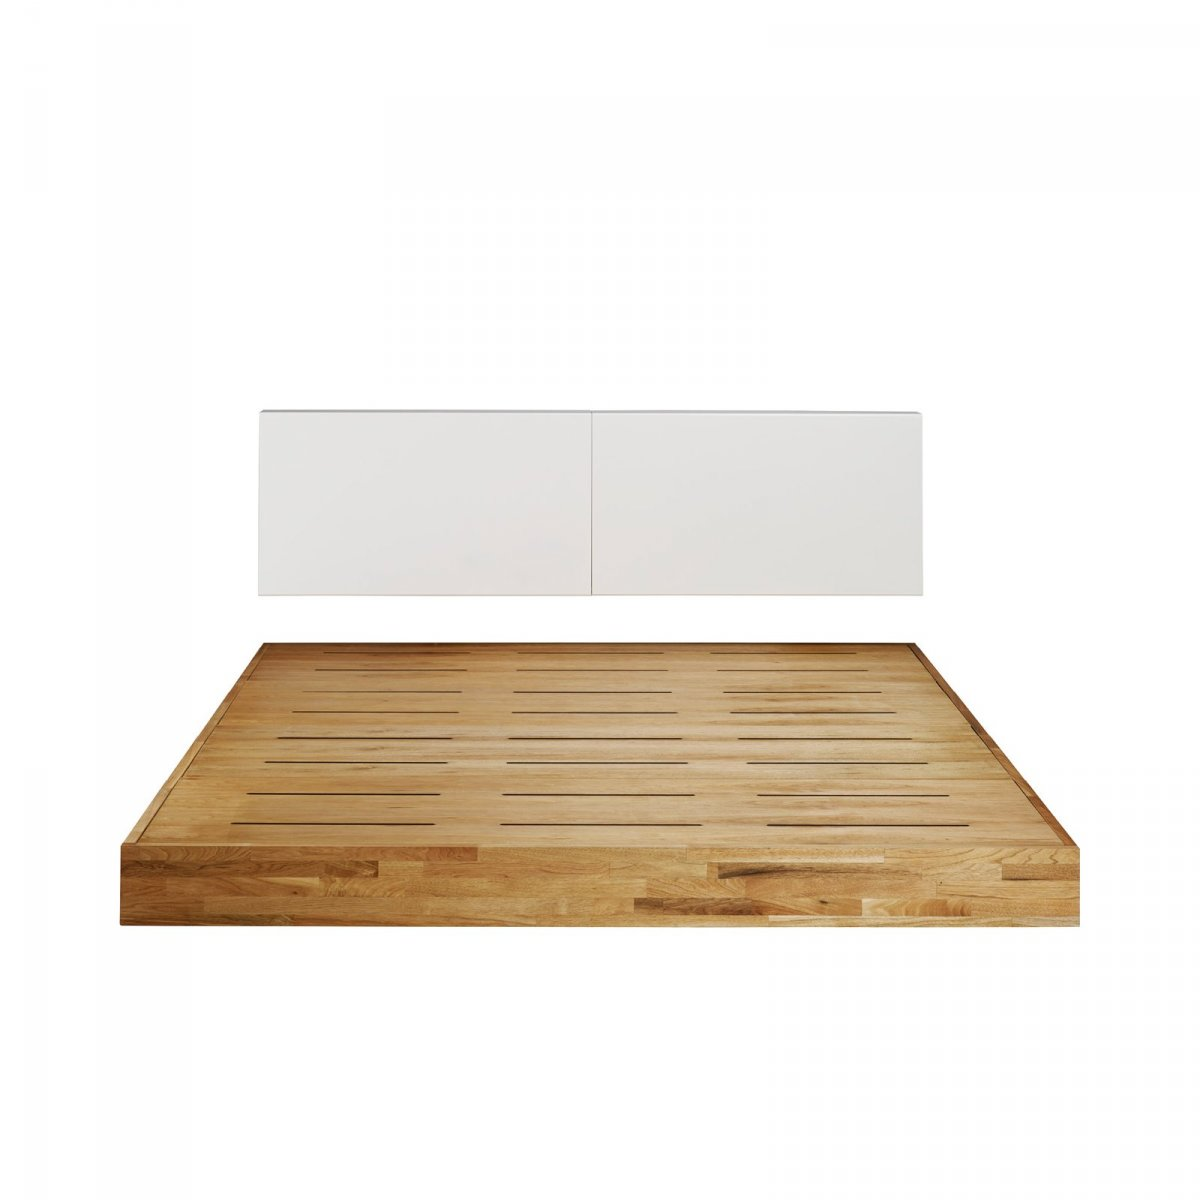 LAXseries Storage Bed.